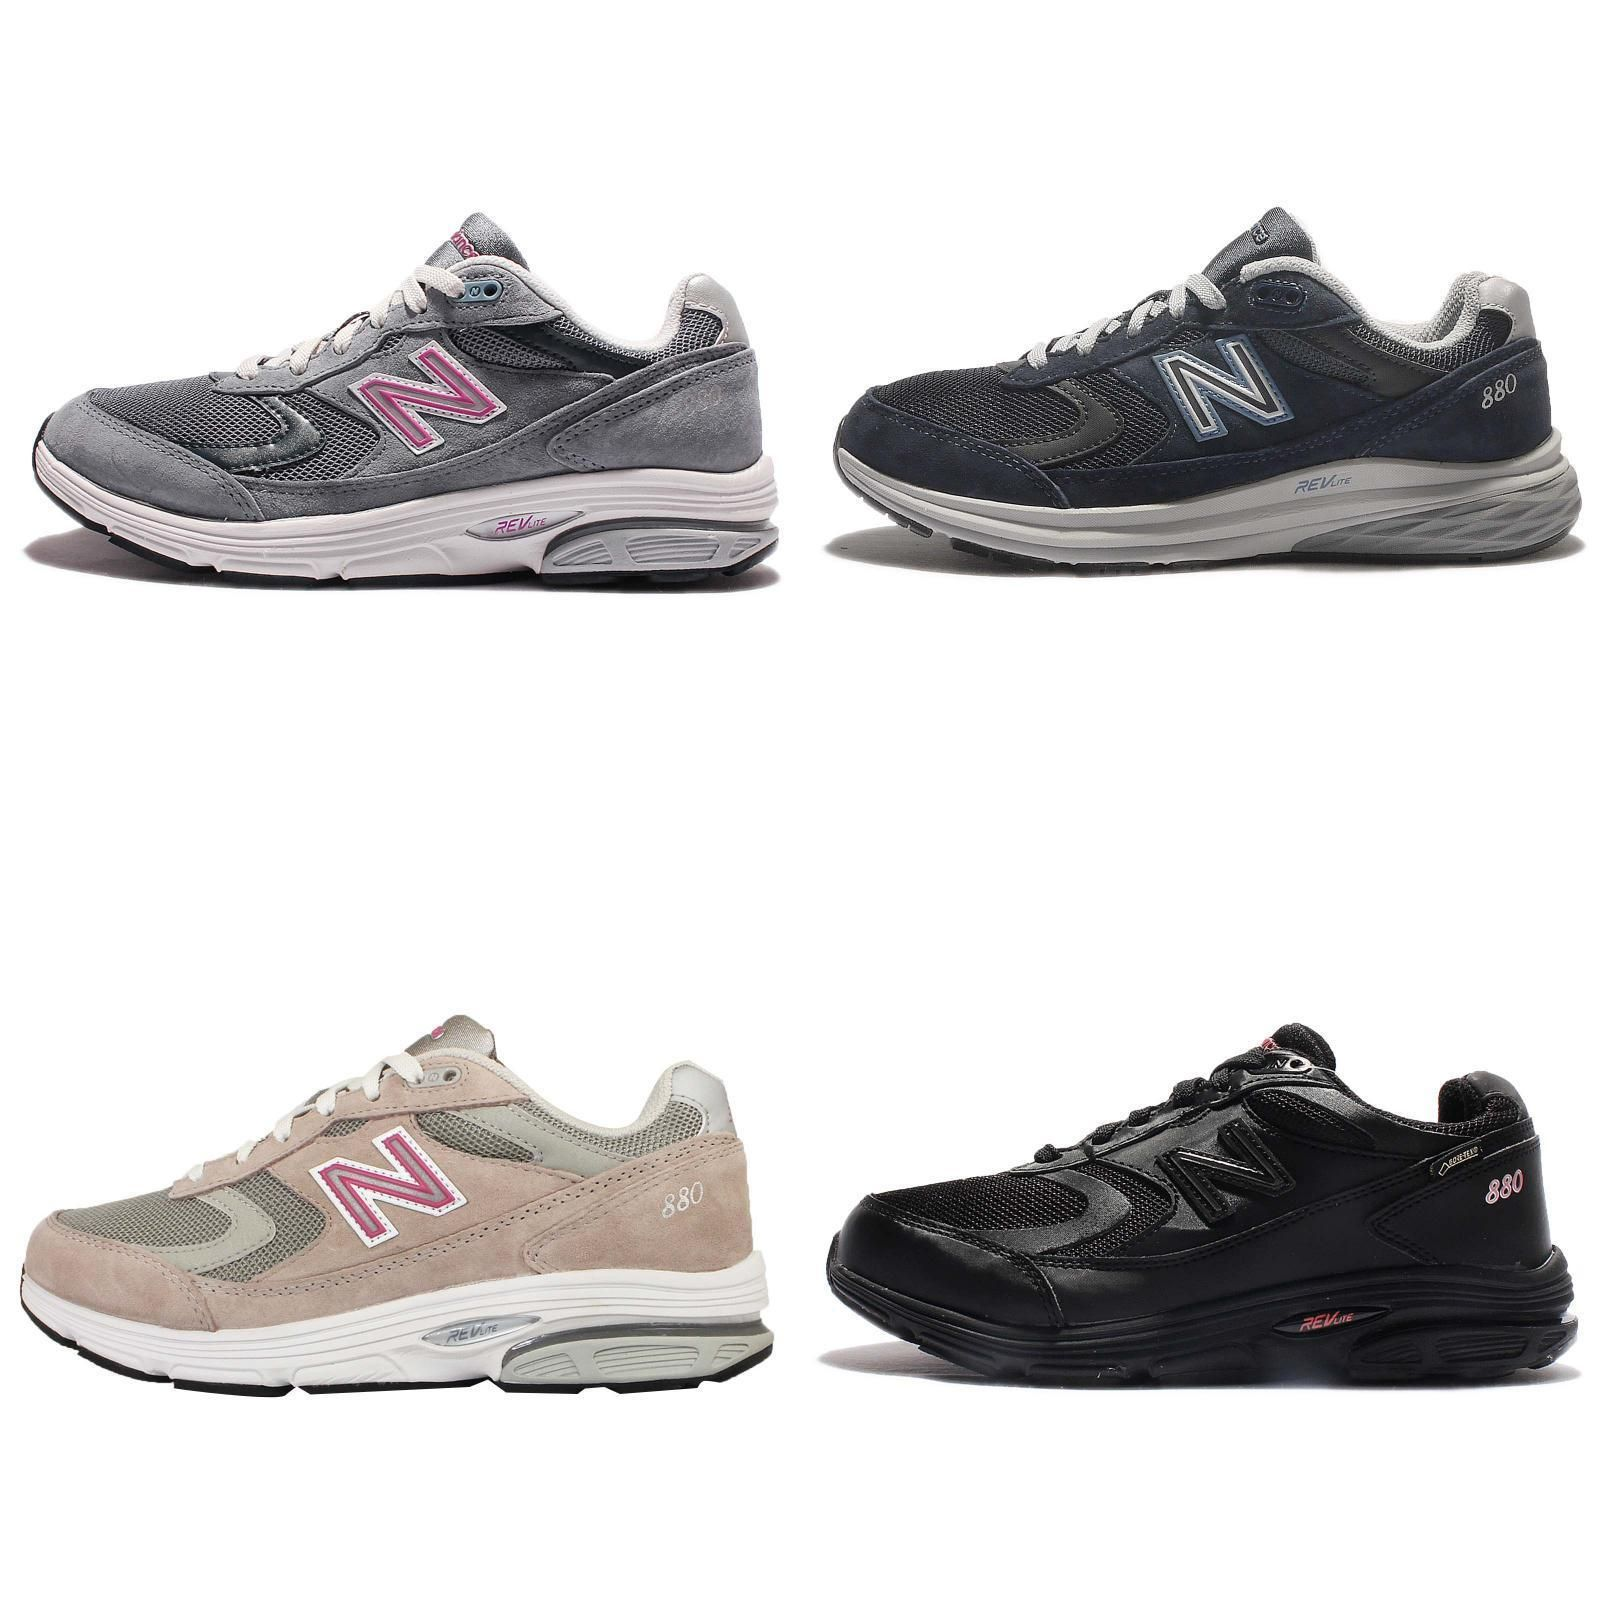 ea5edebf4141 New Balance WW880 D Wide Womens Running Shoes Sneakers Pick 1 ...